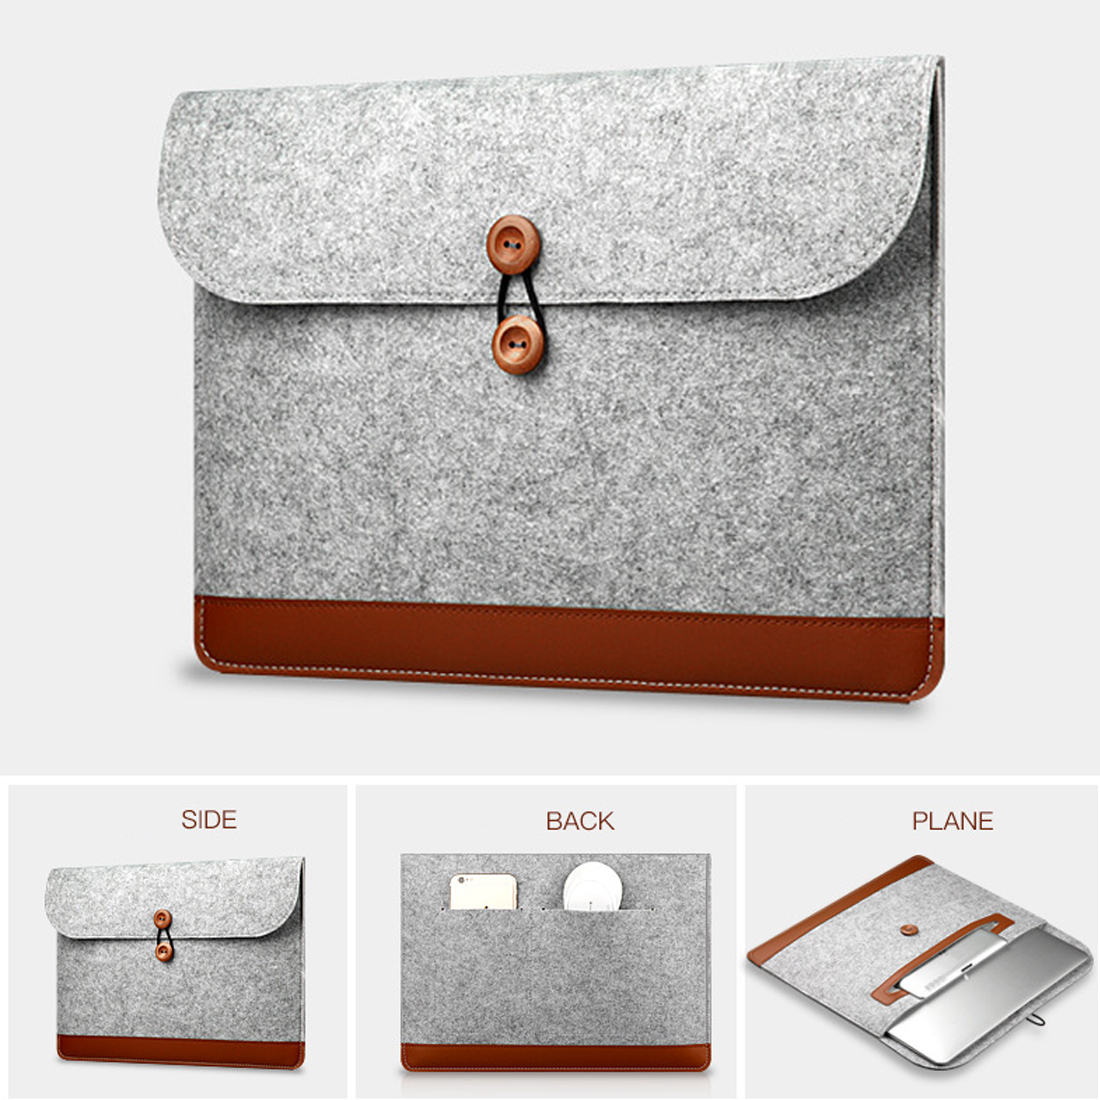 Image 5 - Centechia New Fashion Soft Sleeve Bag Case For Apple Macbook Air Pro Retina 11 12 13 15 Laptop Anti scratch Felt Cover-in Laptop Bags & Cases from Computer & Office